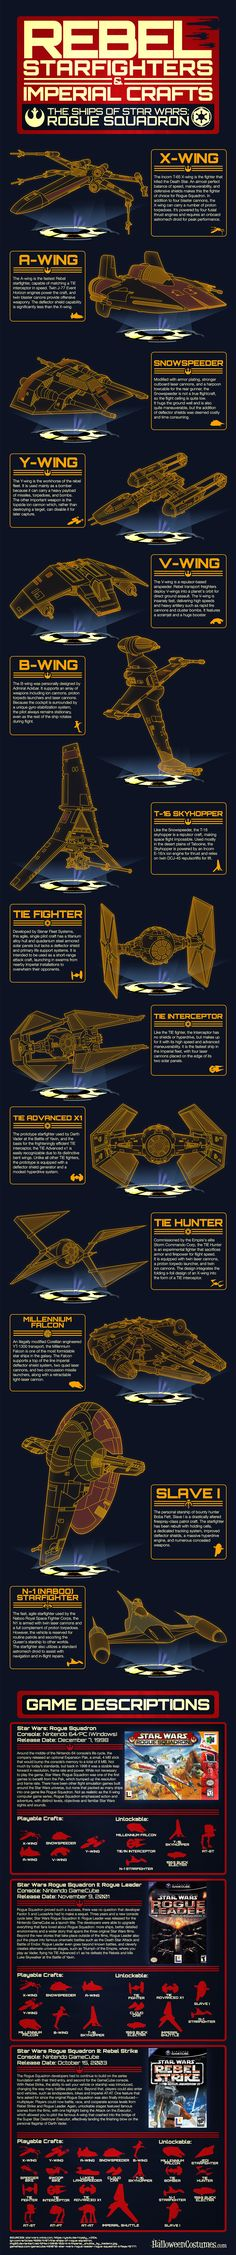 Naves de Star Wars